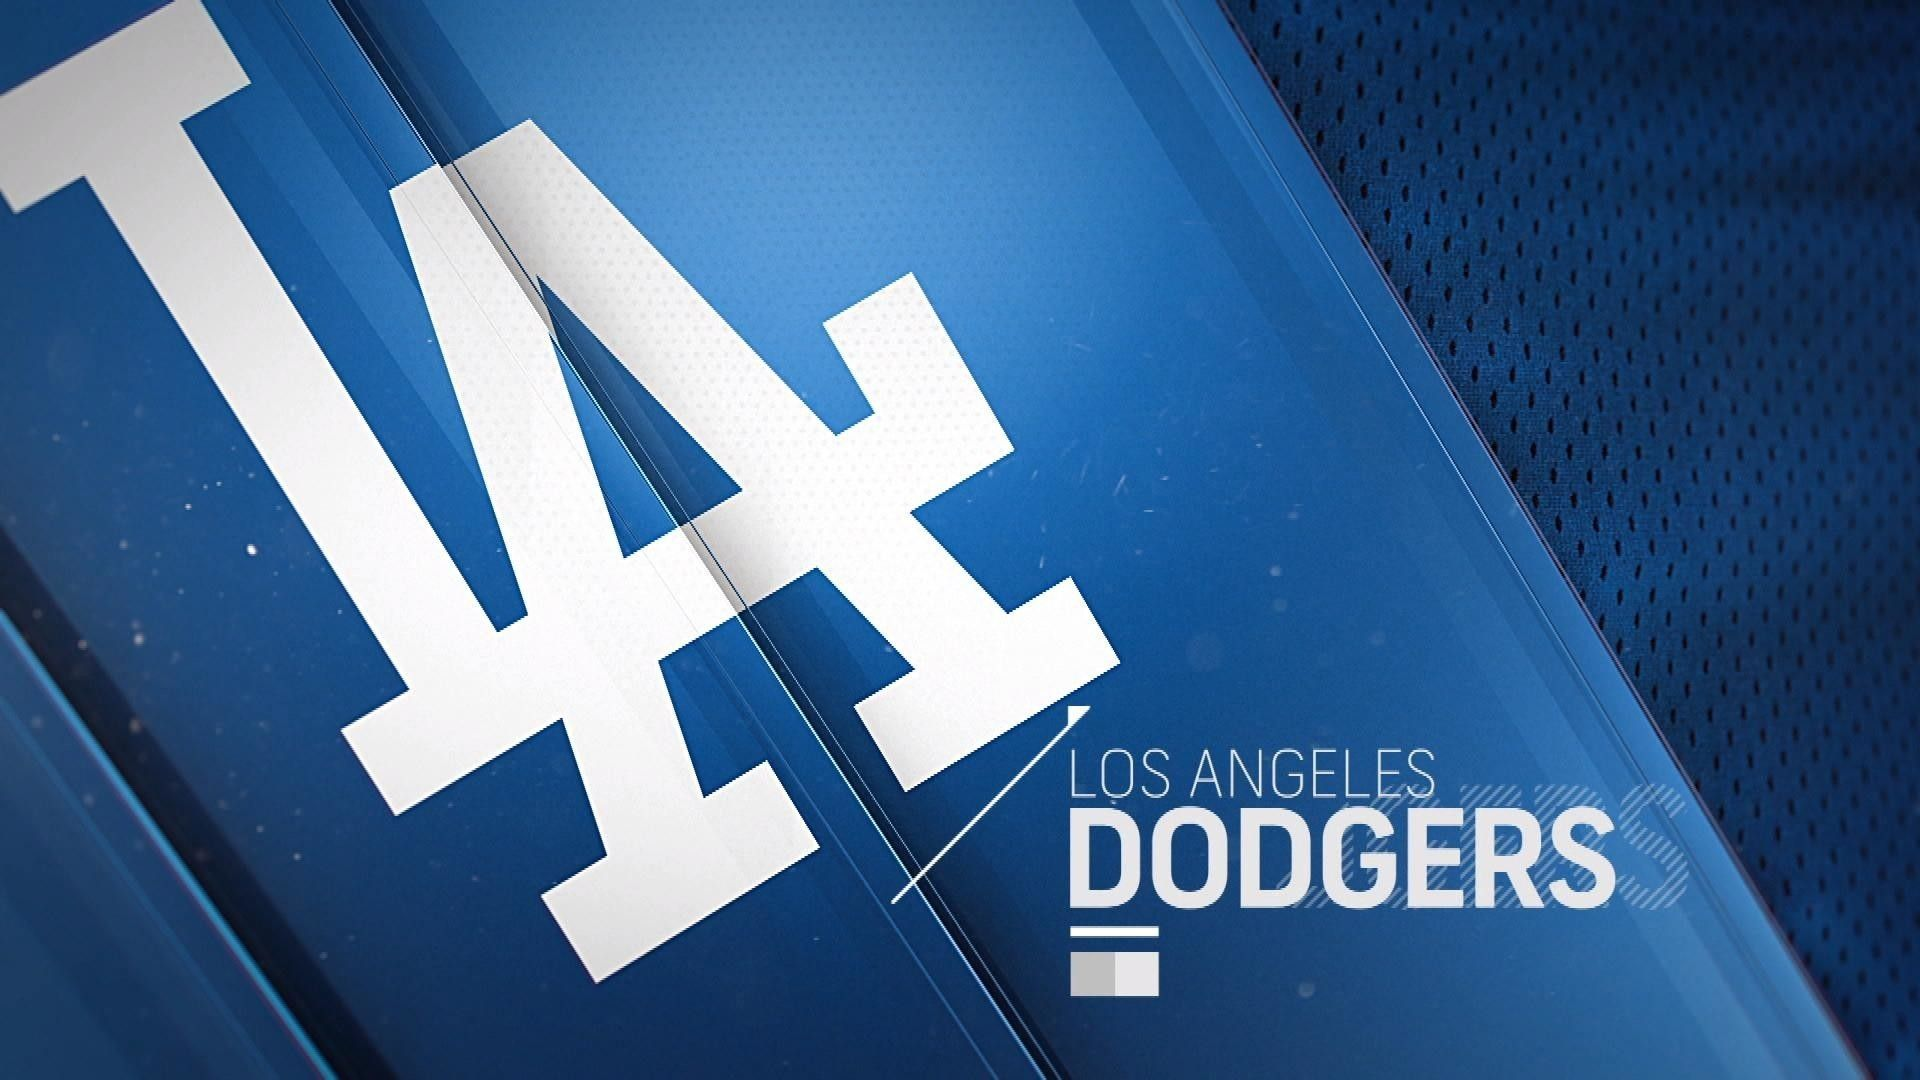 Los Angeles Dodgers Wallpapers Top Free Los Angeles Dodgers Backgrounds Wallpaperaccess